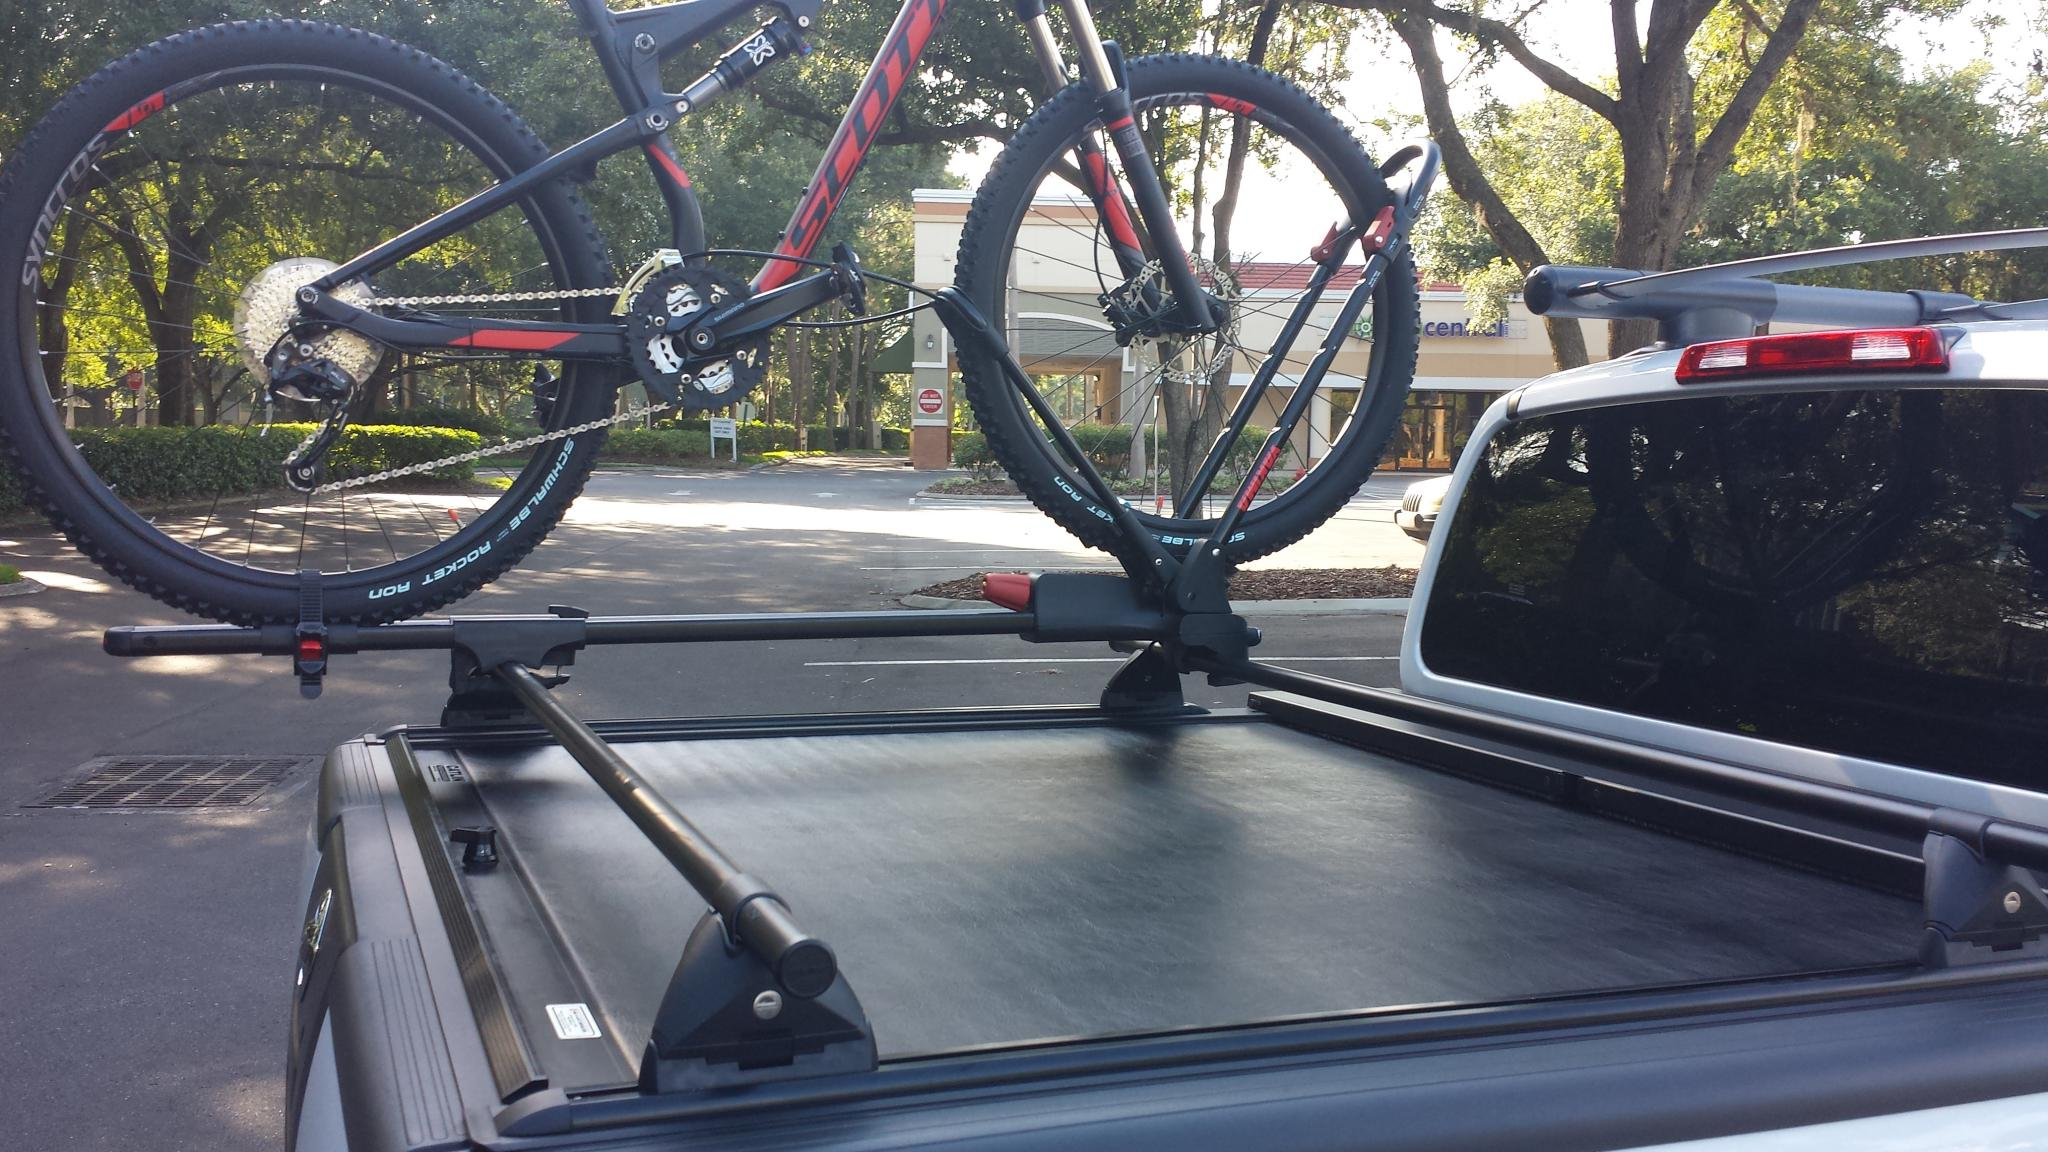 Nissan Frontier Forum - View Single Post - Thule Aero Bars mounted on truck bed